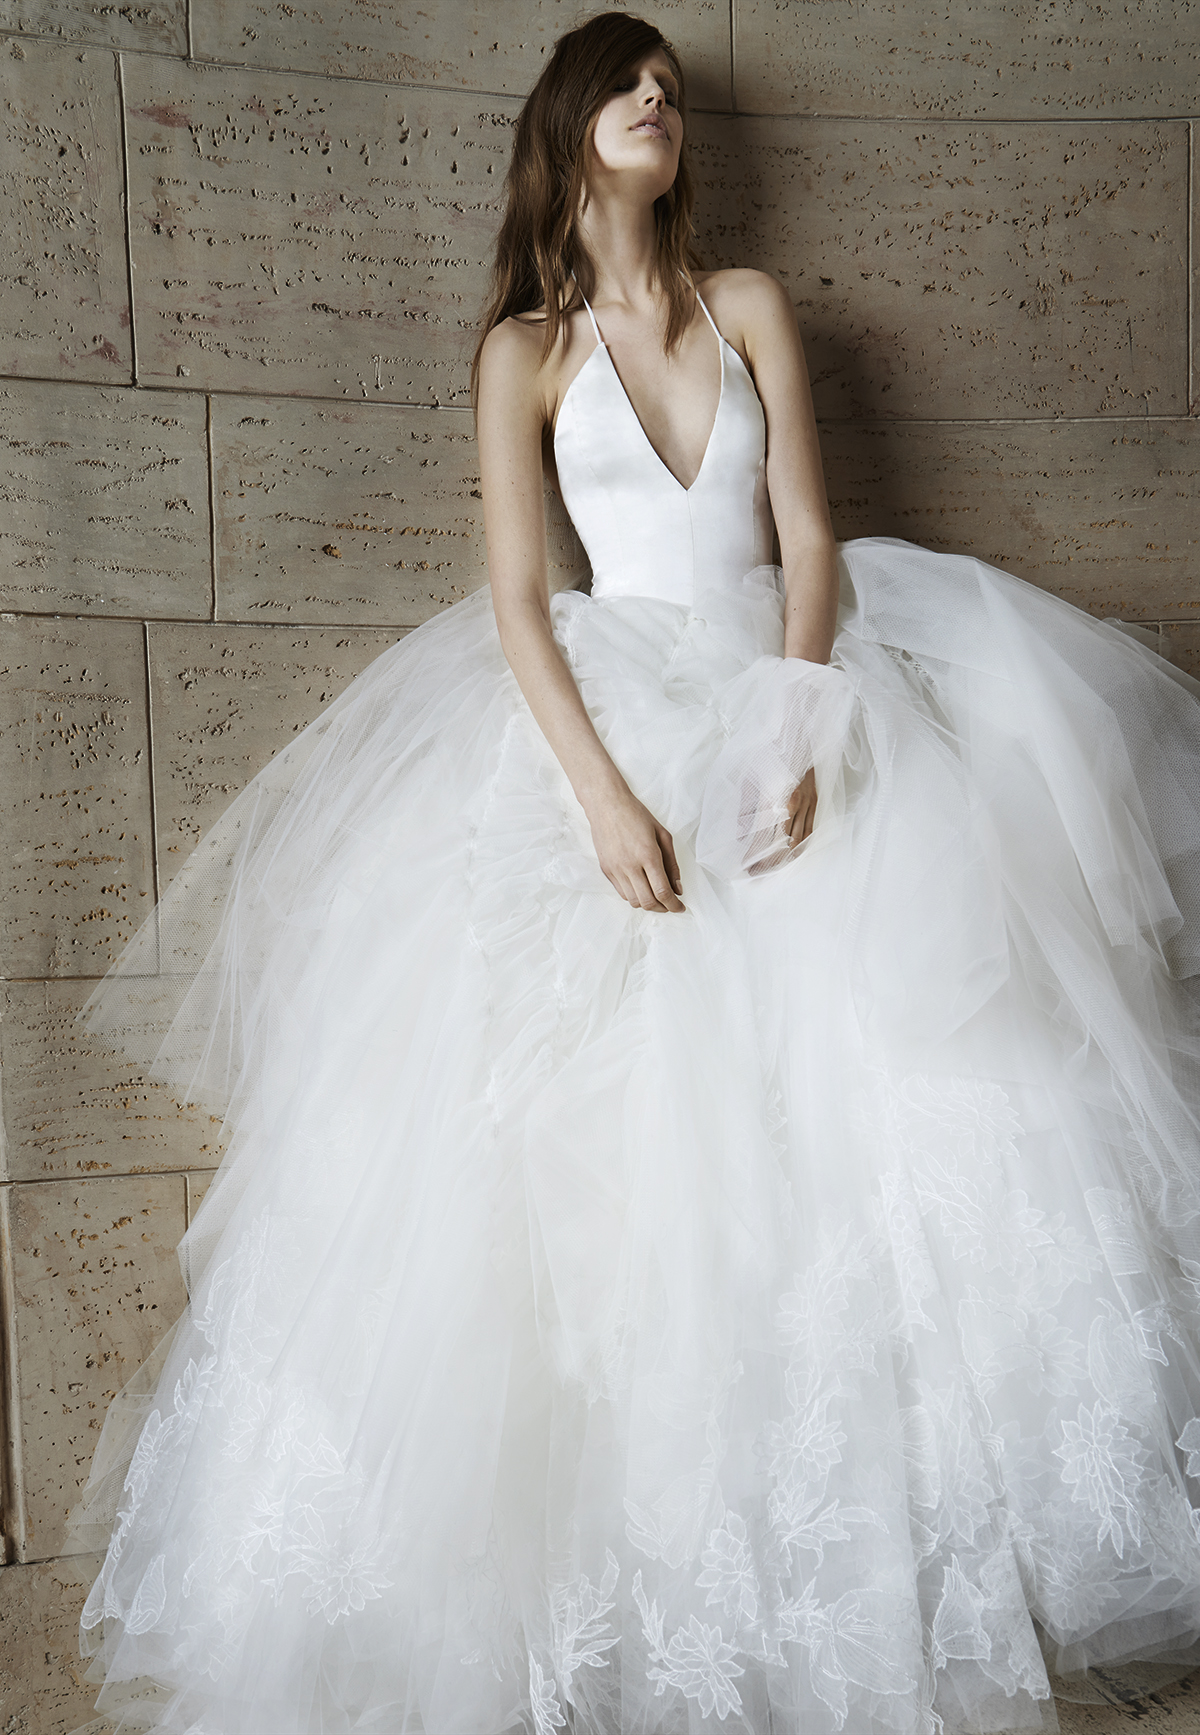 Wedding Dresses, Hairstyles & Jewelry Trends for 2015 to Make Your Wedding Really Stand Out